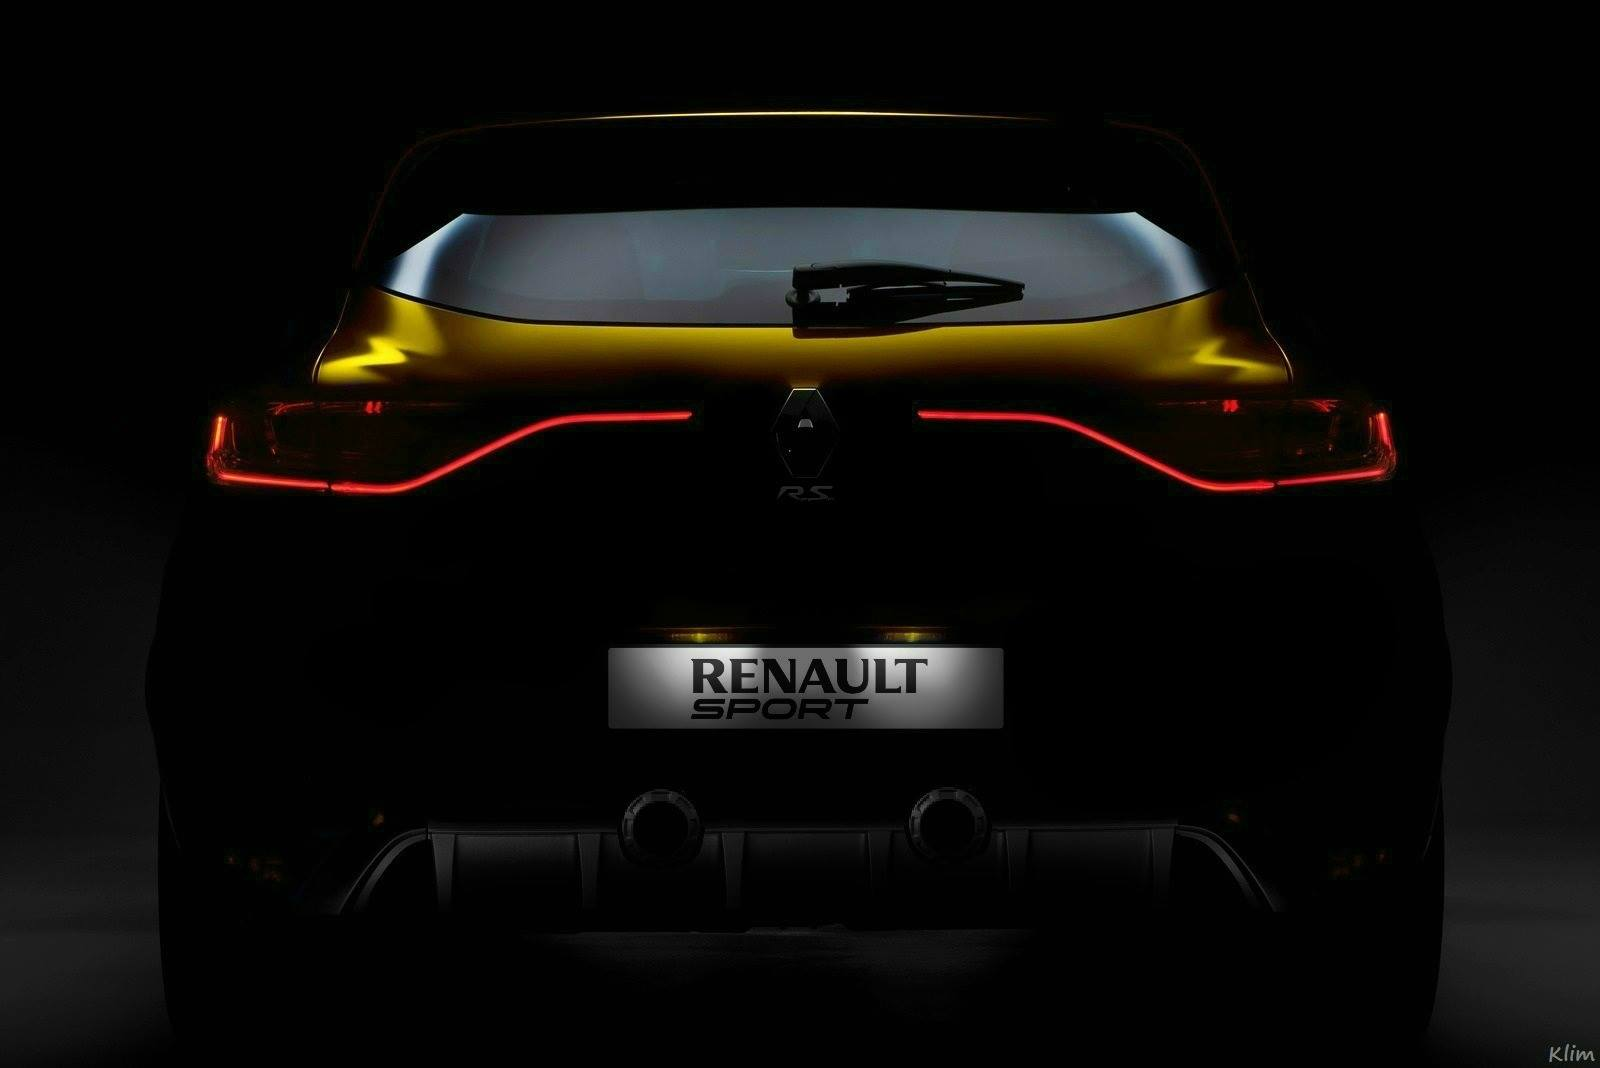 the gallery for renault sport logo. Black Bedroom Furniture Sets. Home Design Ideas